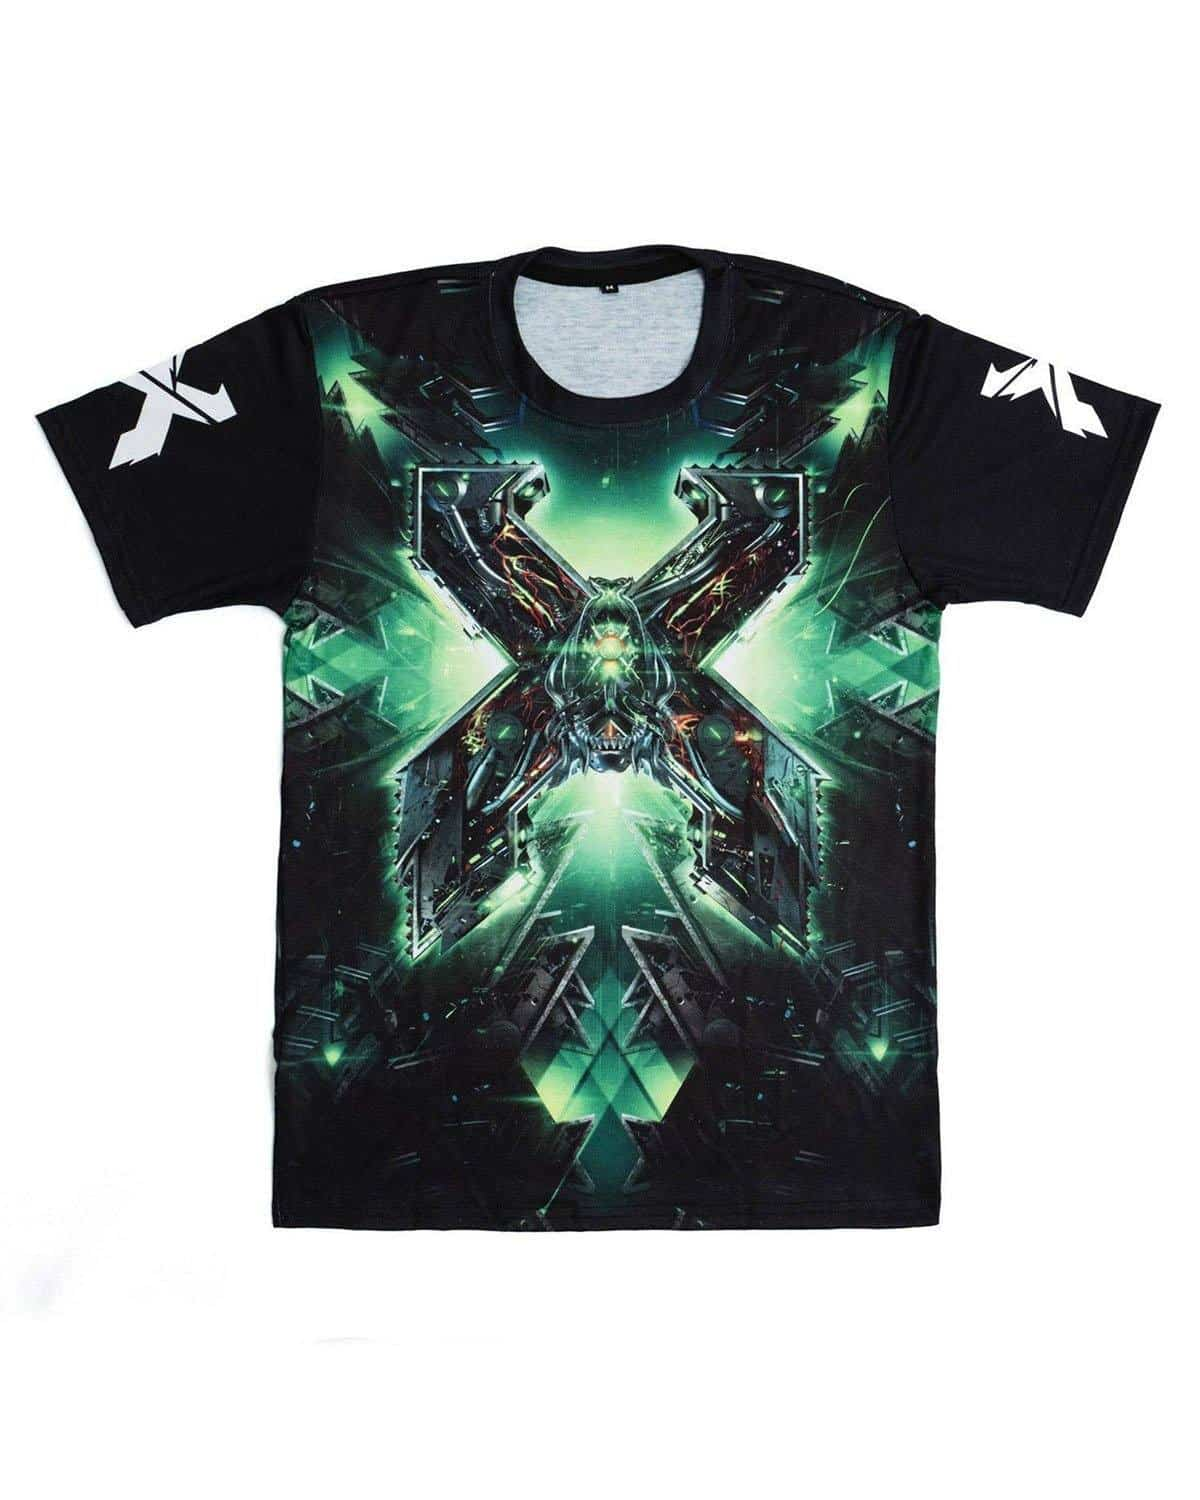 Excision 'The Paradox 2018' Dye Sub Tour T-Shirt - Black/Green